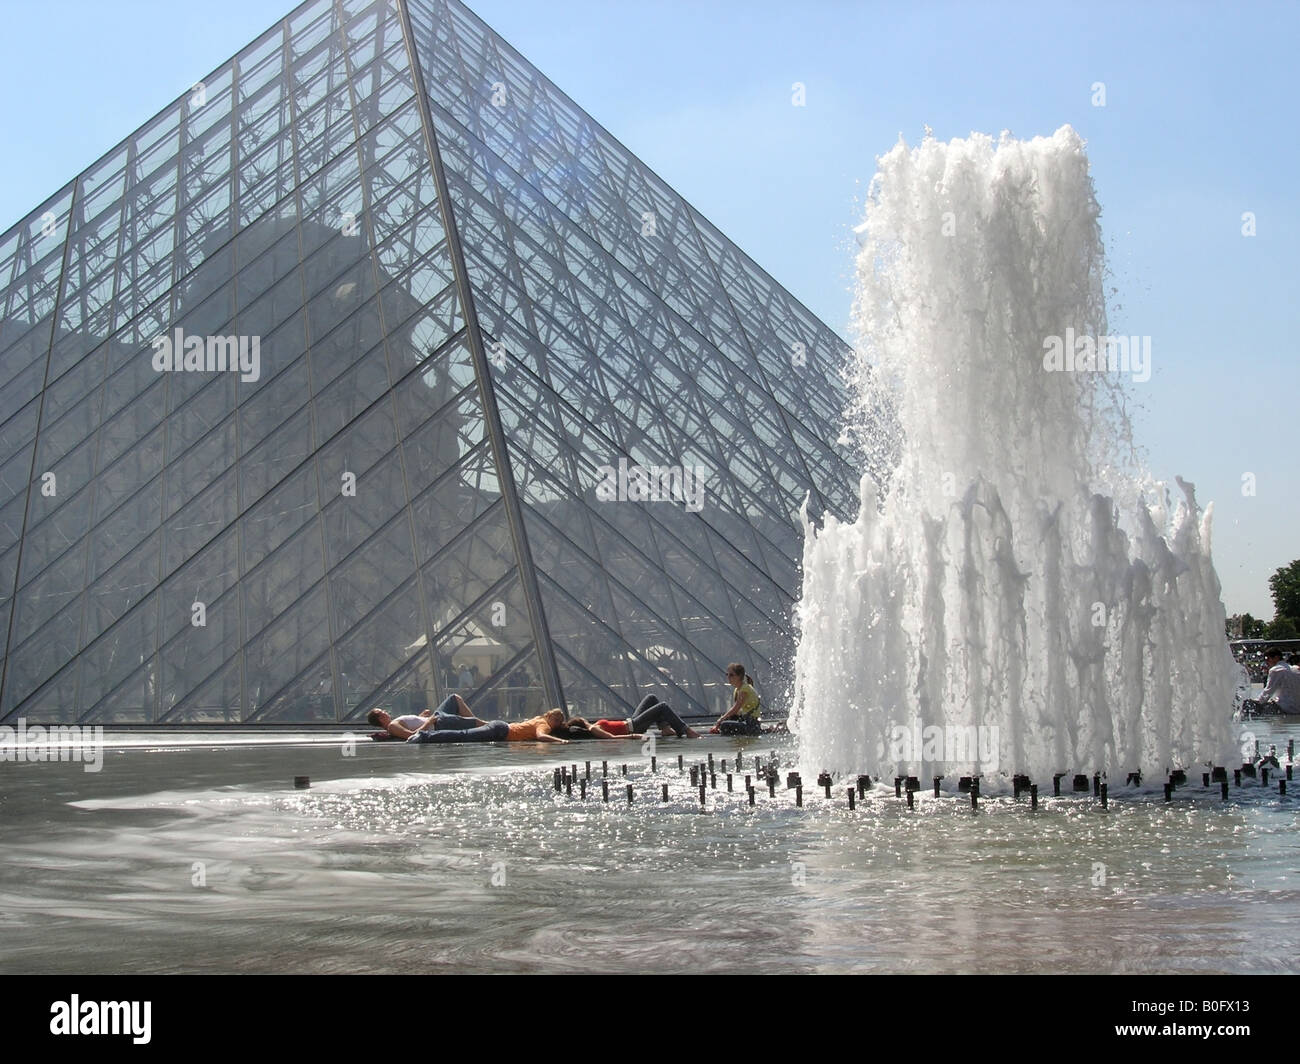 Detail view of Louvre Pyramid with fountain and relaxing tourists in the background Paris France Stock Photo